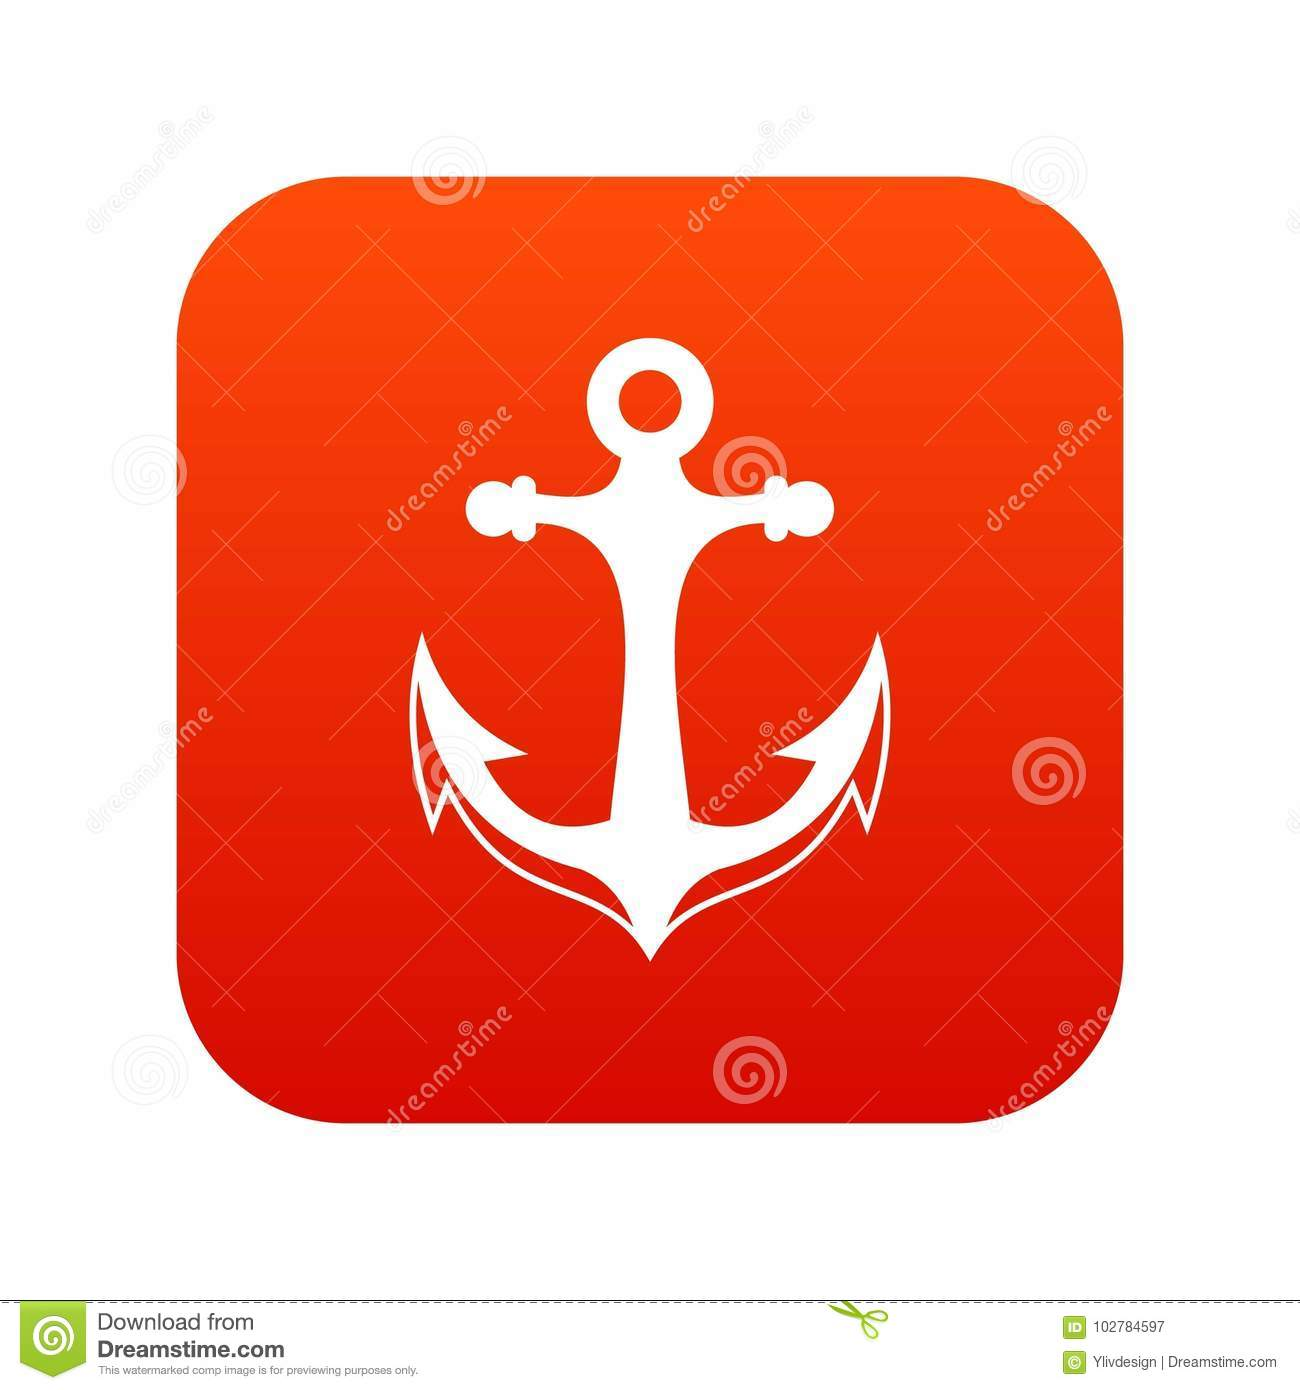 Download Anchor Icon Digital Red Stock Vector Illustration Of Iron